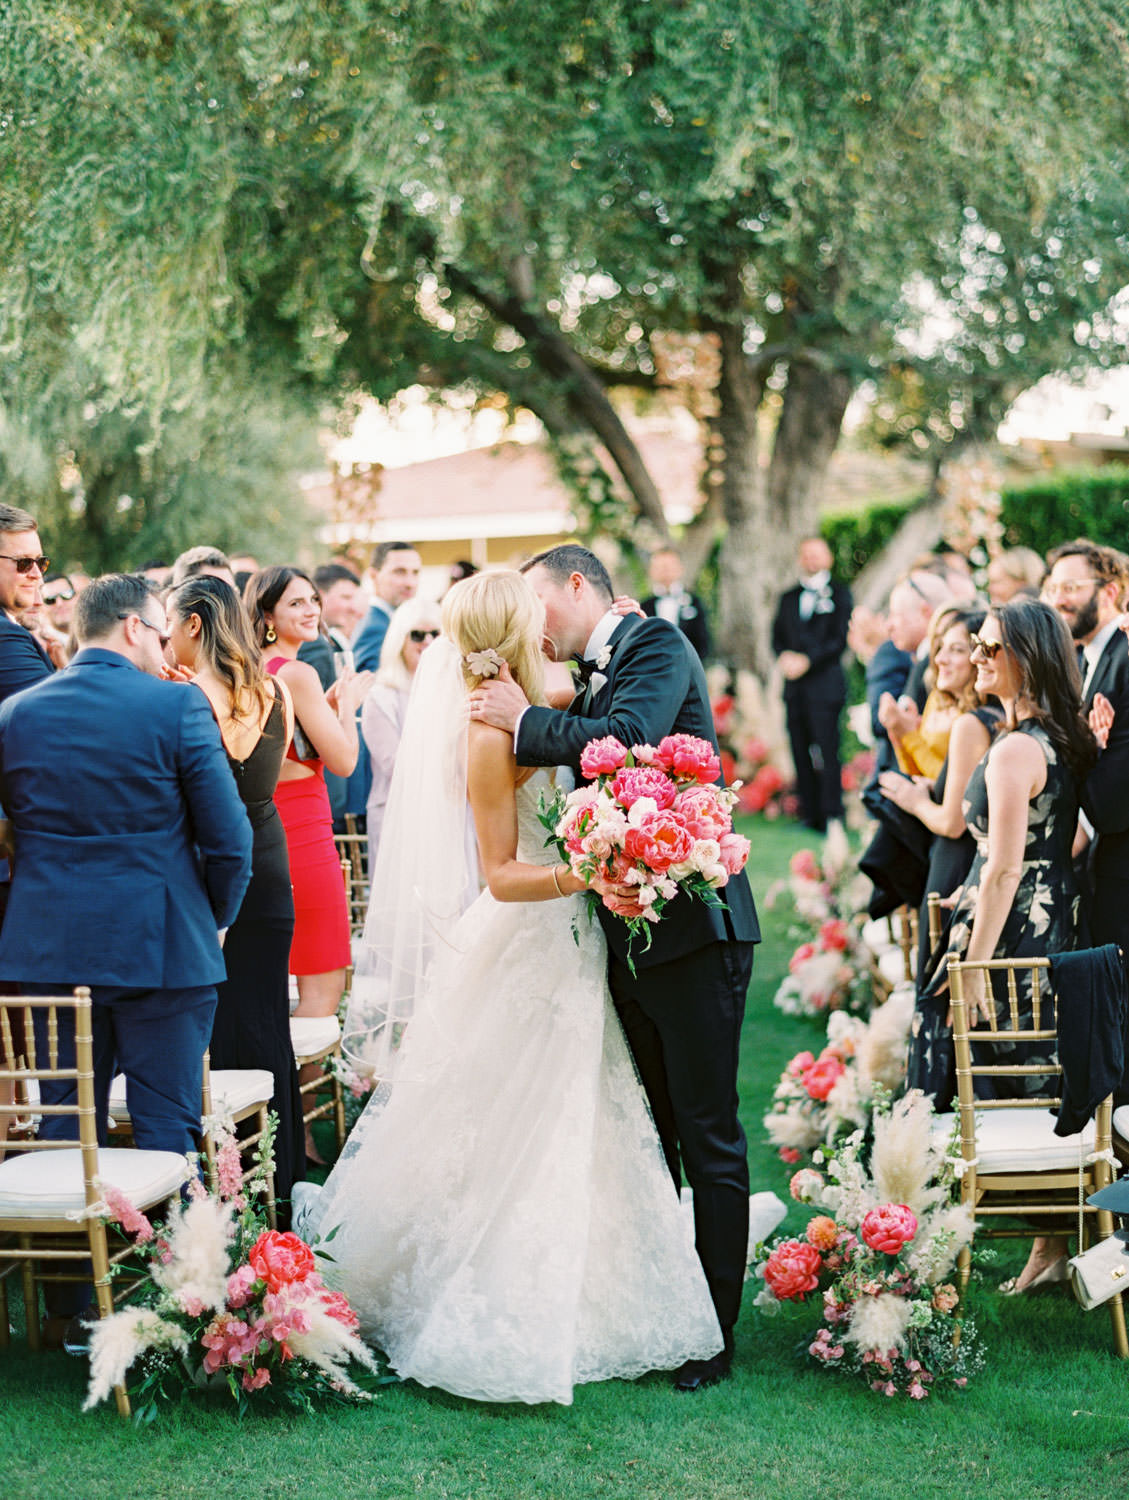 Bride and groom kissing at the end of the aisle. holding a pink bouquet. Large tree with hanging floral arrangements and pink peonies and pampas grass spiraling up the trunk. Miramonte Resort ceremony on Miramonte Green. Film photography by Cavin Elizabeth.